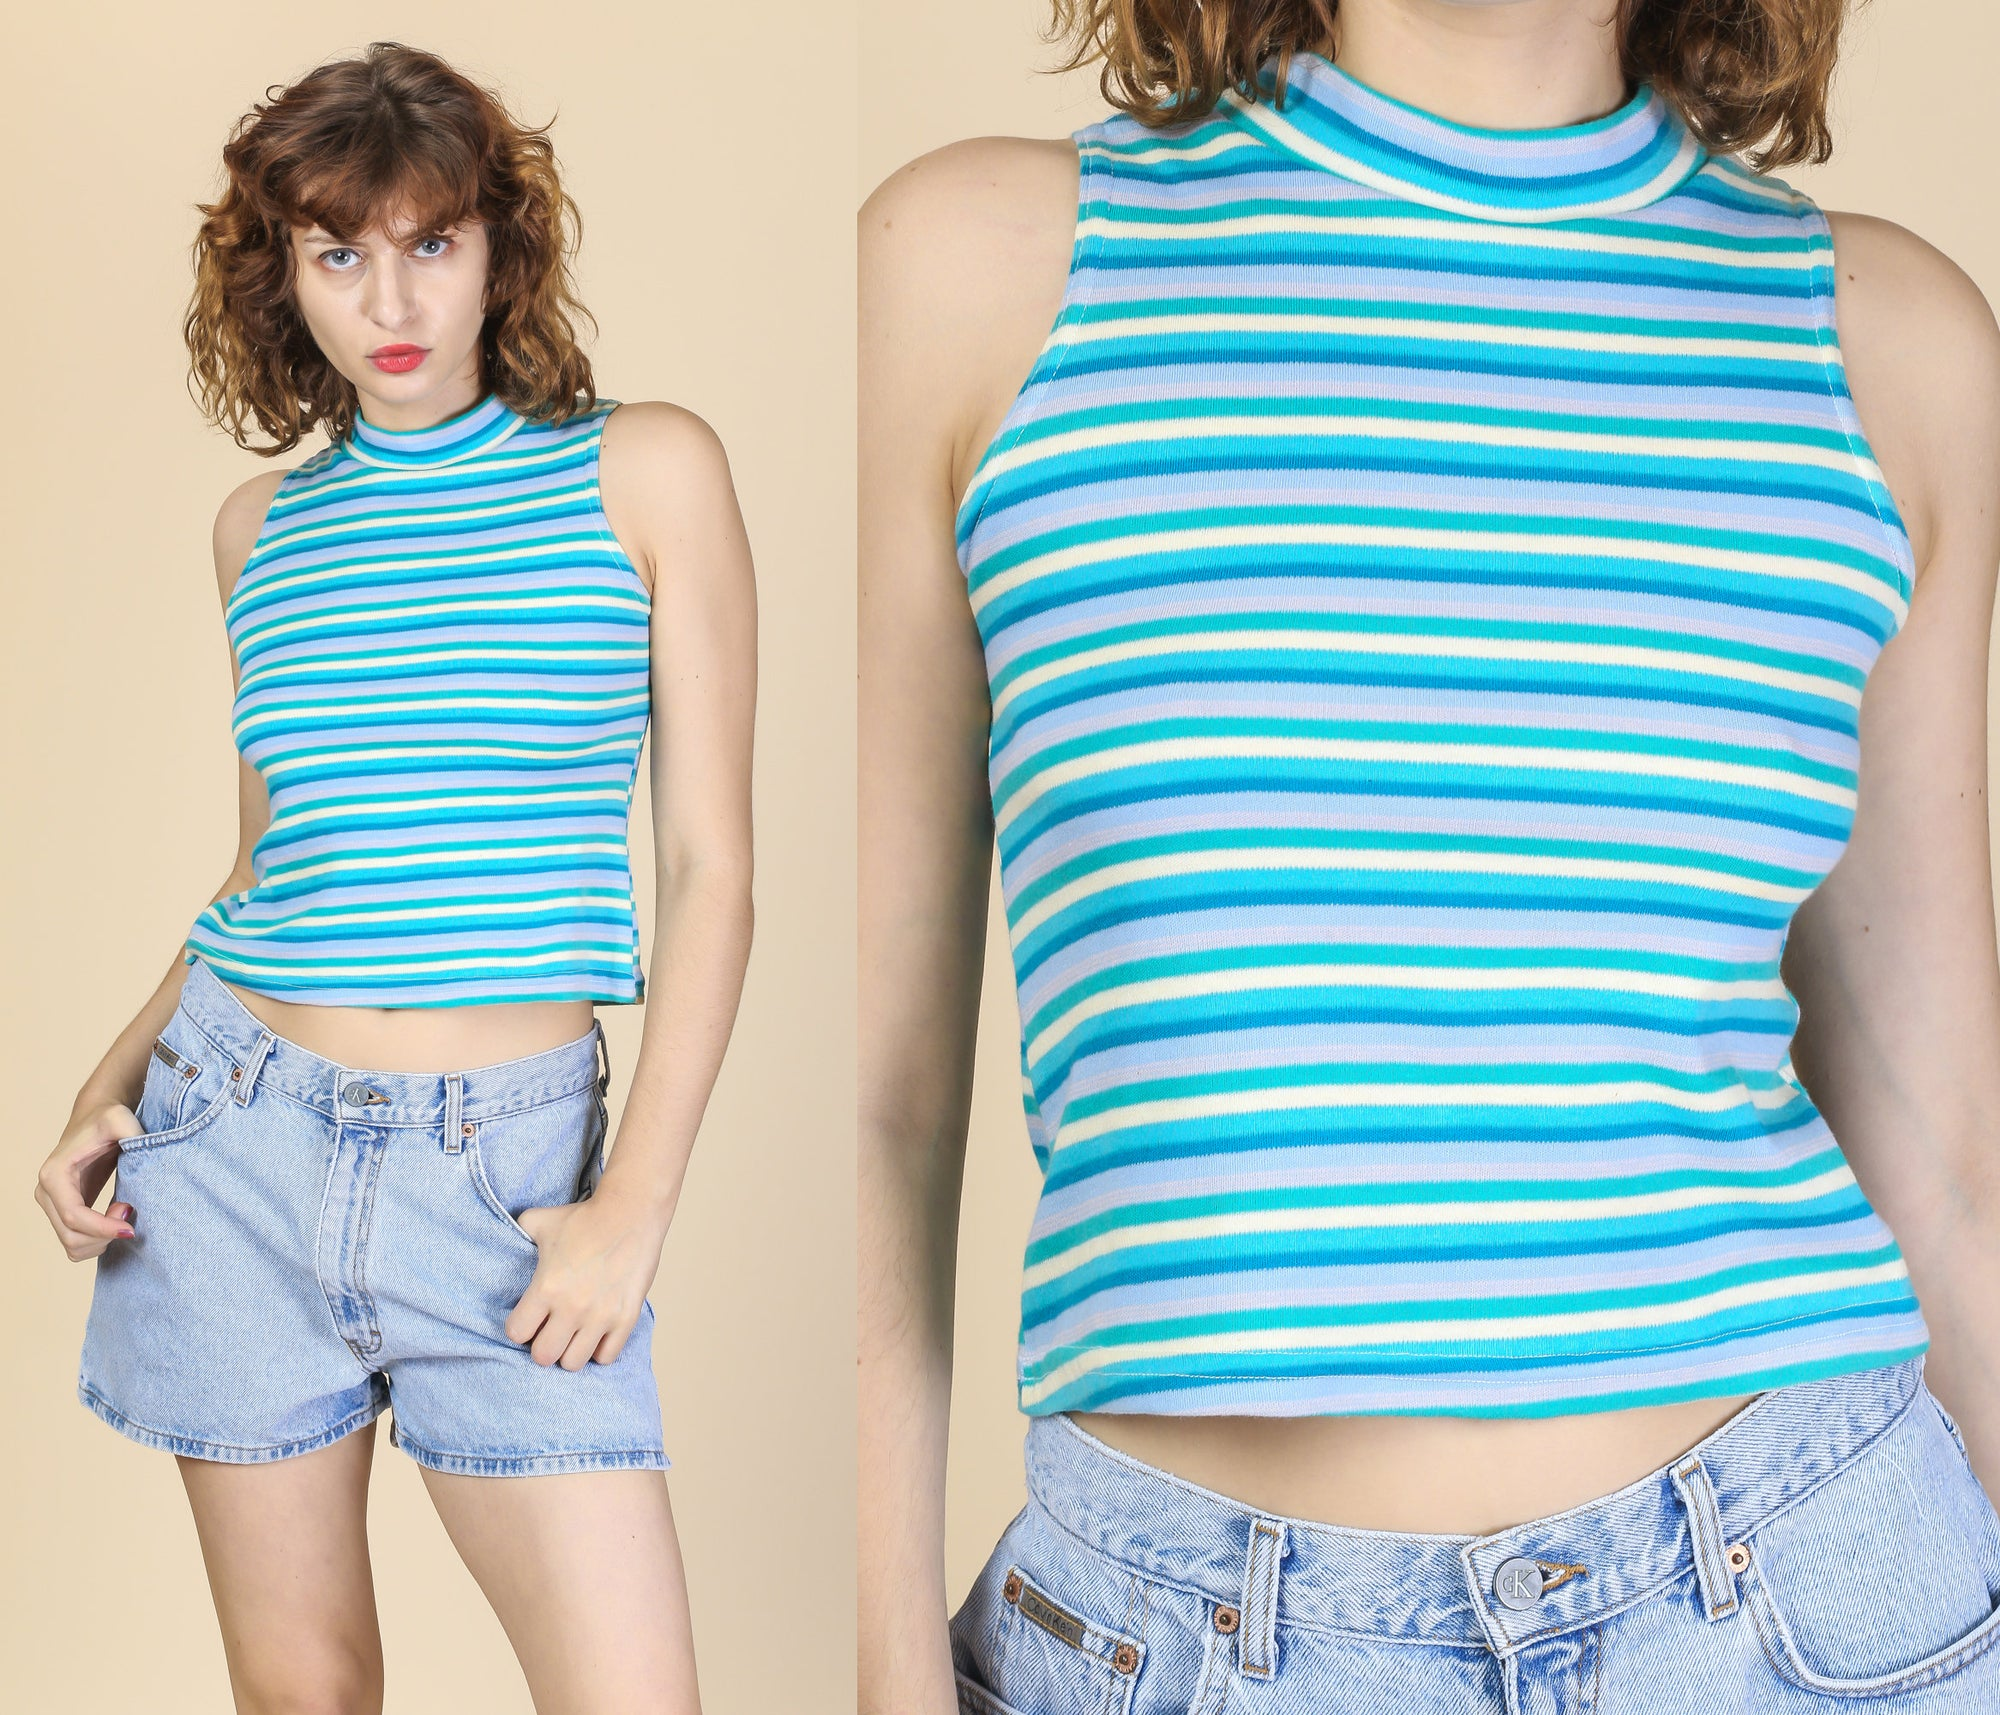 80s 90s Blue Striped Crop Top - Medium to Large